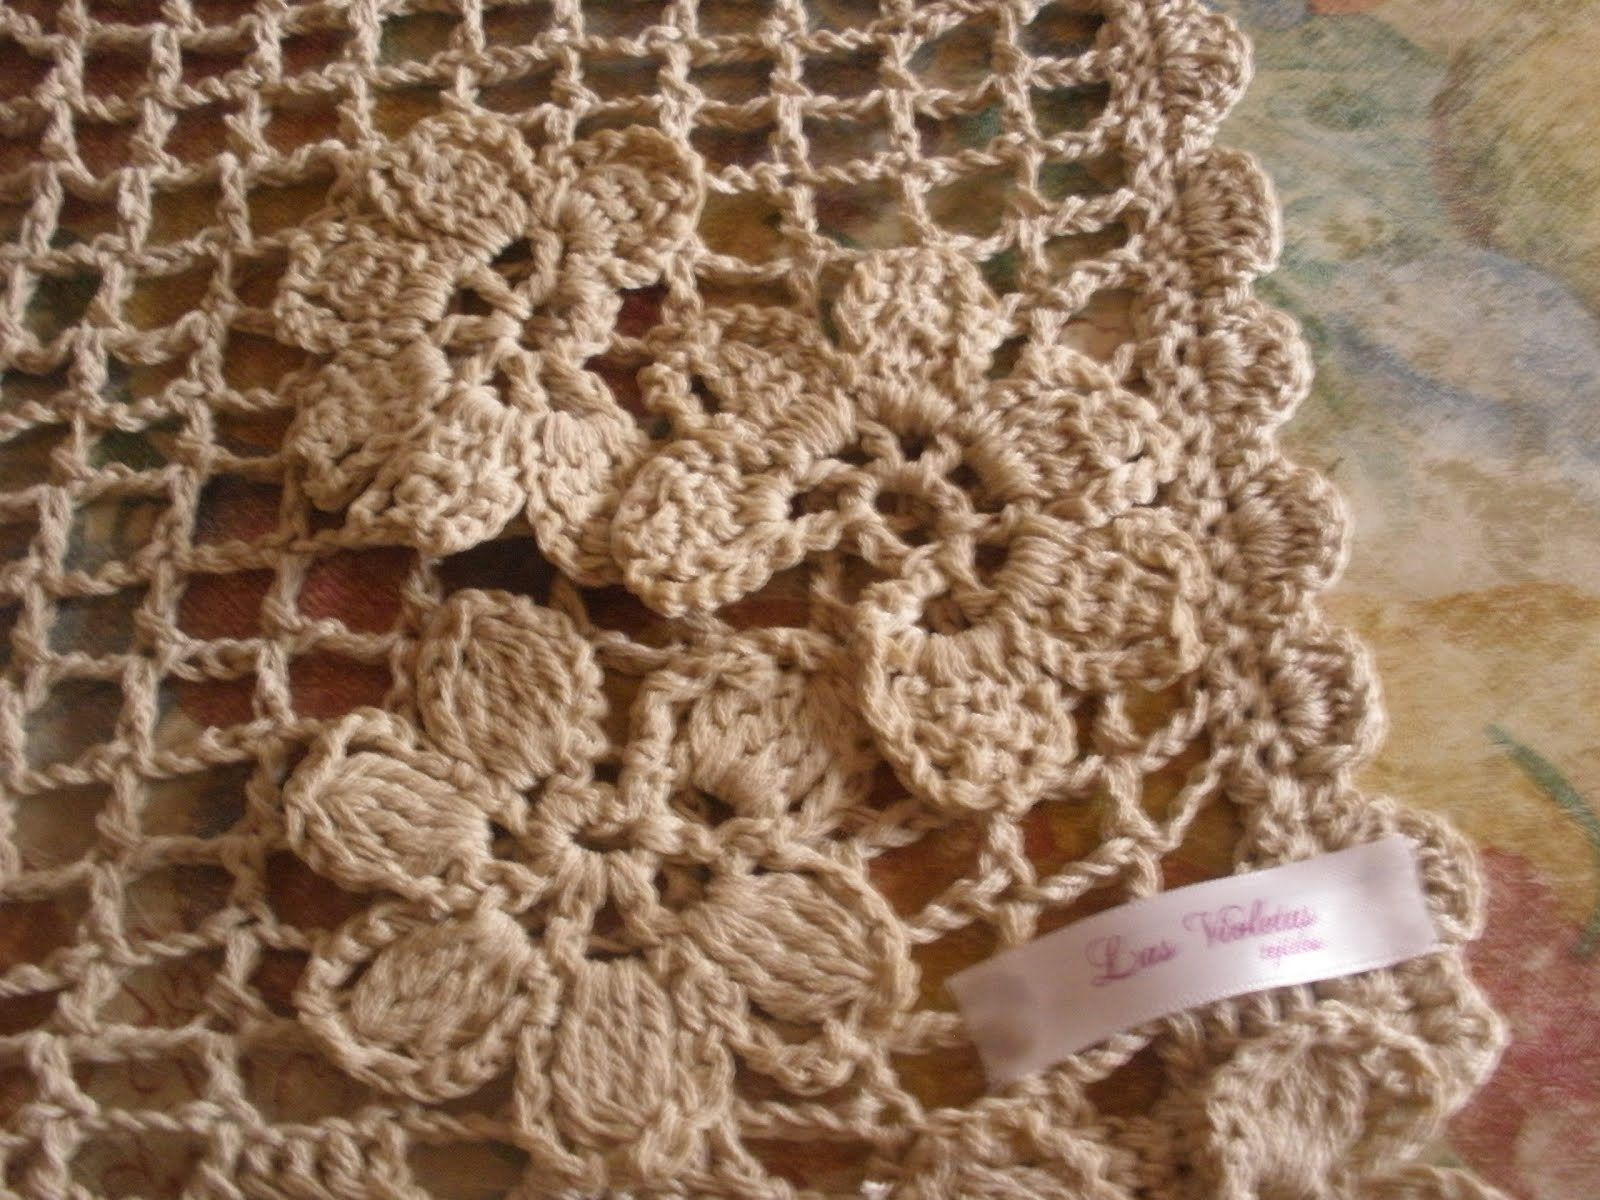 Cortina de flores a crochet for Cortinas artesanales